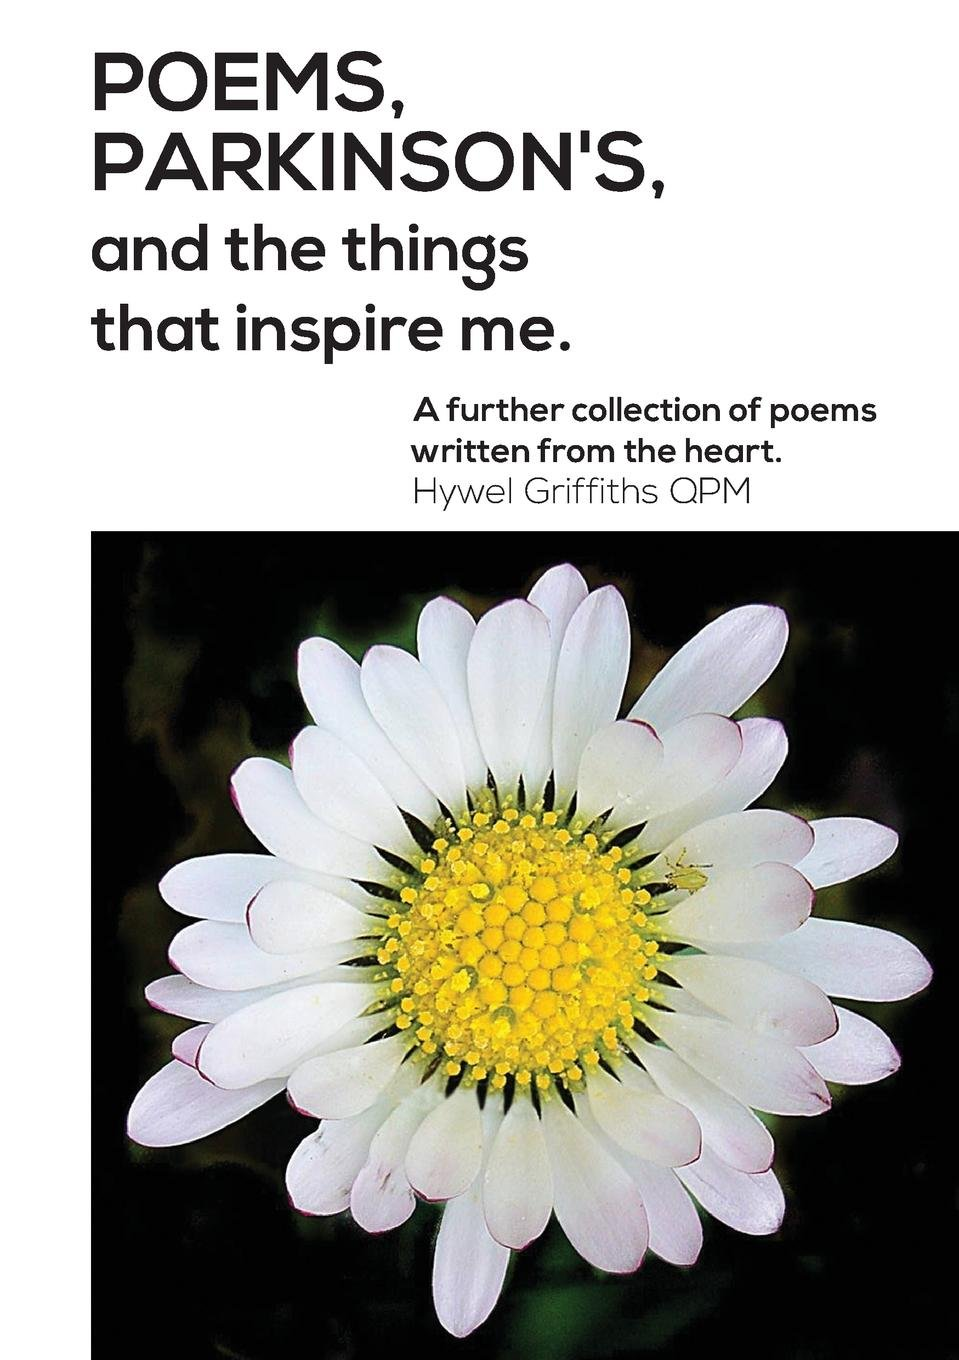 Poems parkinsons and the things that inspire me hywel griffiths poems parkinsons and the things that inspire me hywel griffiths 9780995460898 amazon books izmirmasajfo